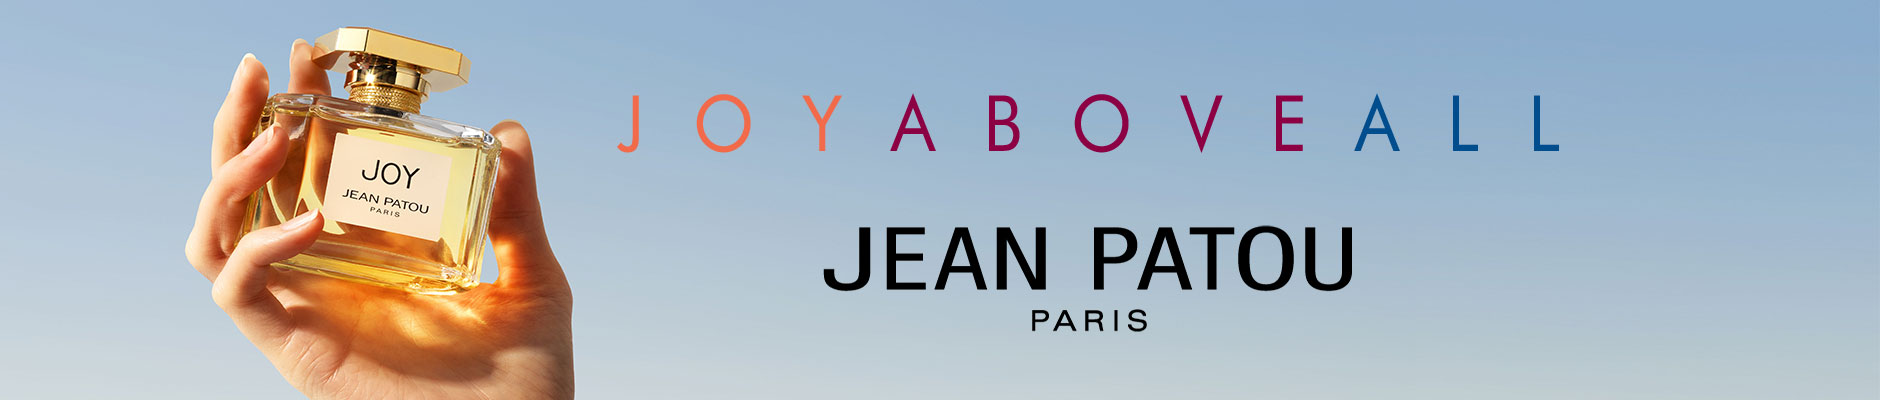 Joy above all - Jean Patou - Paris